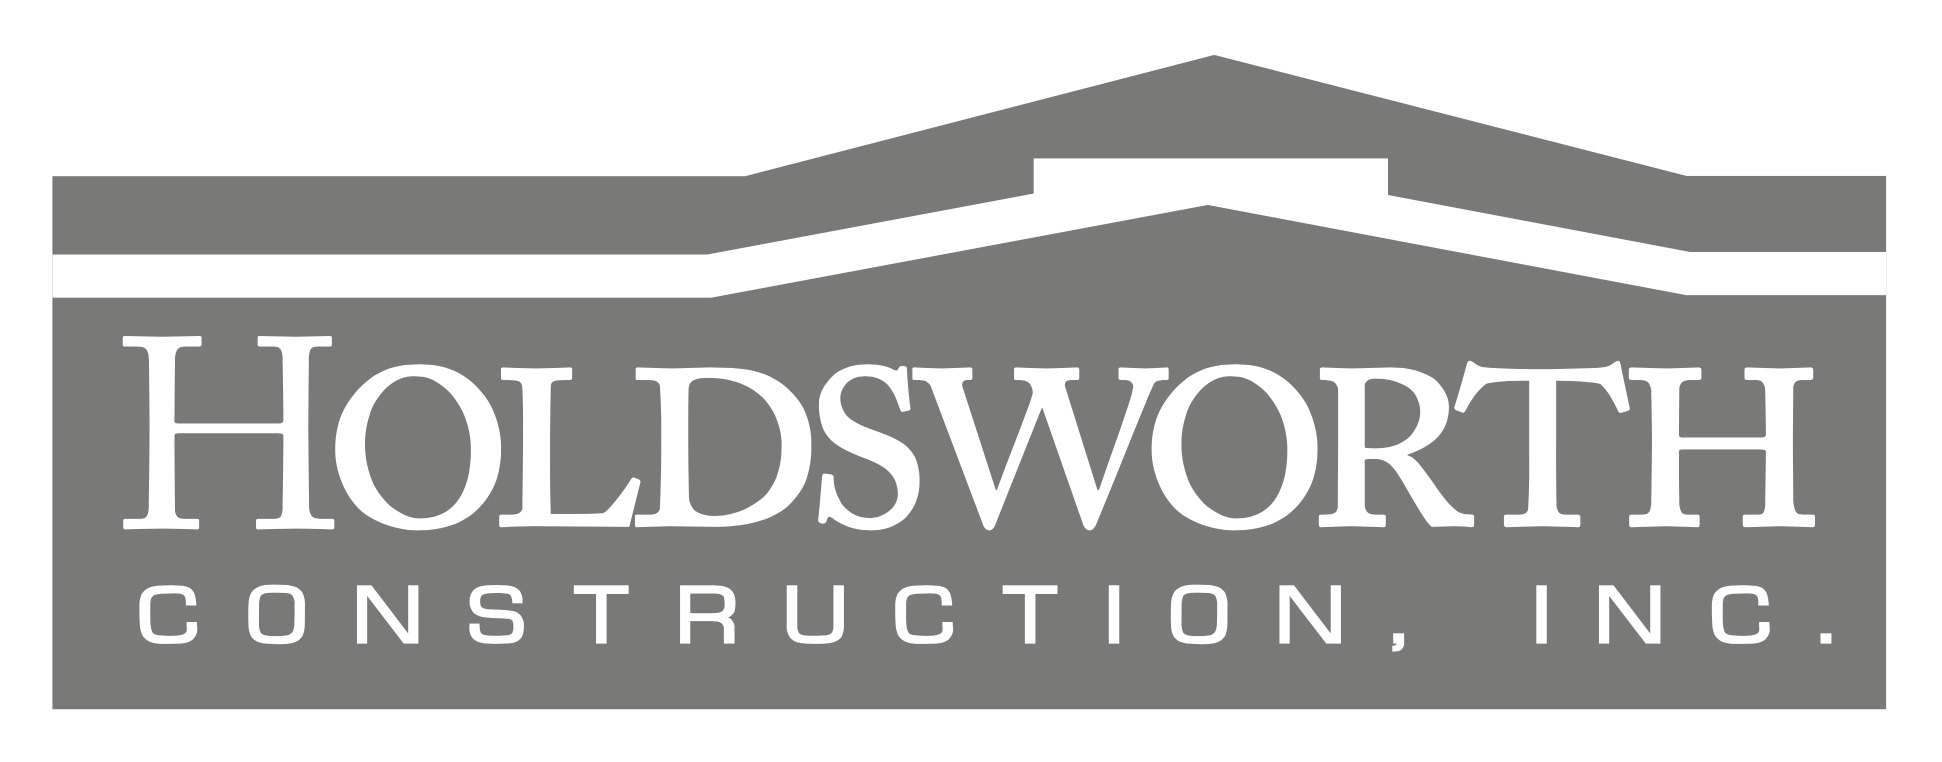 Holdsworth Construction, Inc